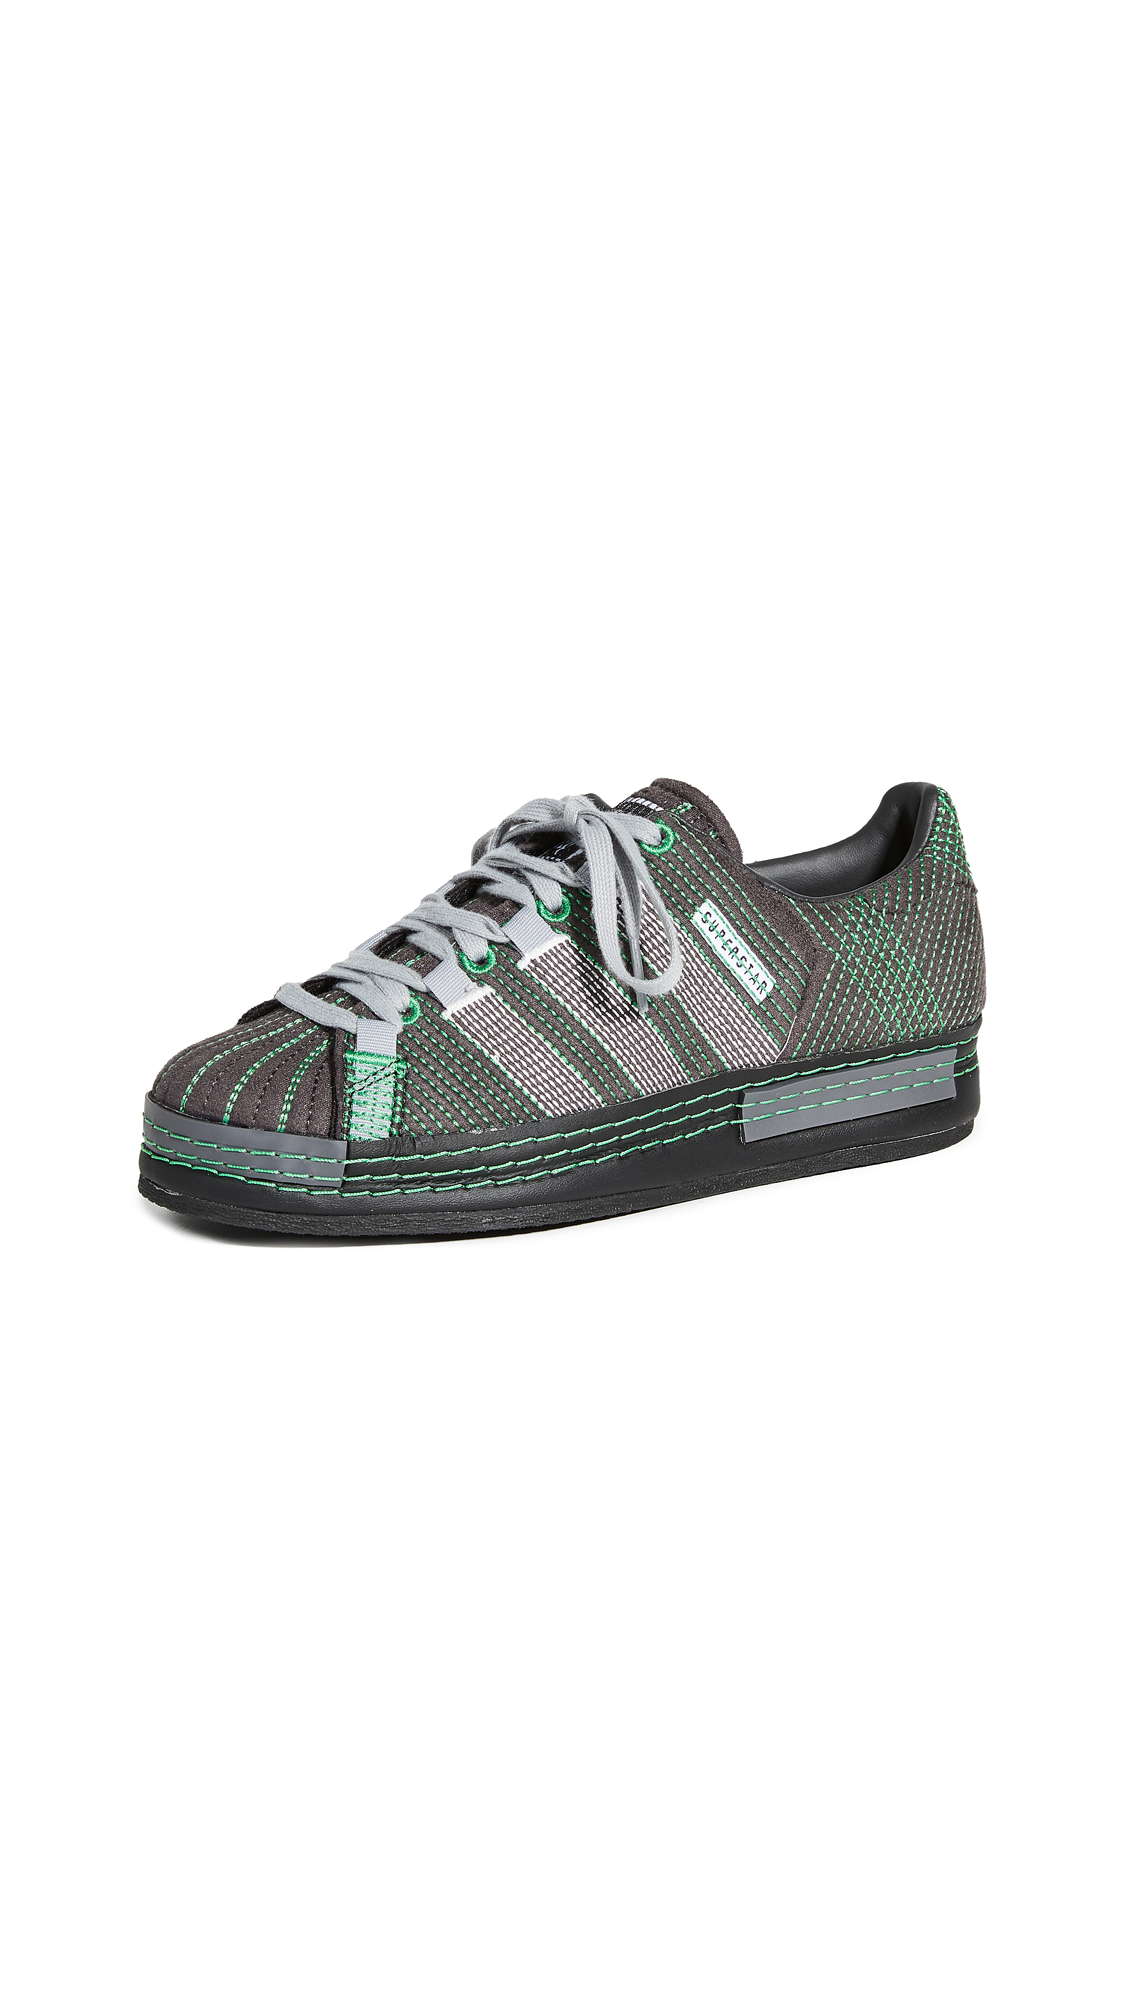 Adidas Originals X CRAIG GREEN SUPERSTAR SNEAKERS